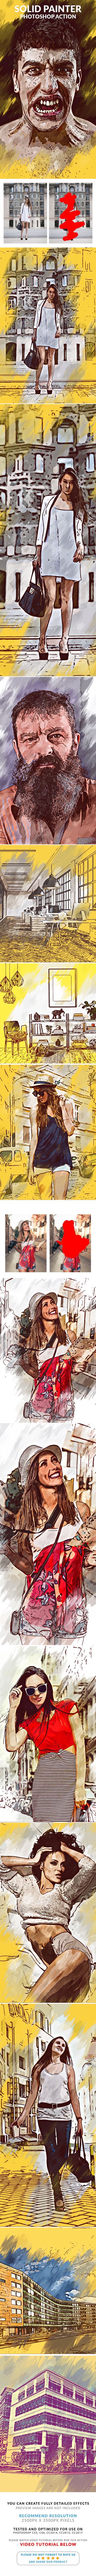 Solid Painter Photoshop Action - Photo Effects Actions